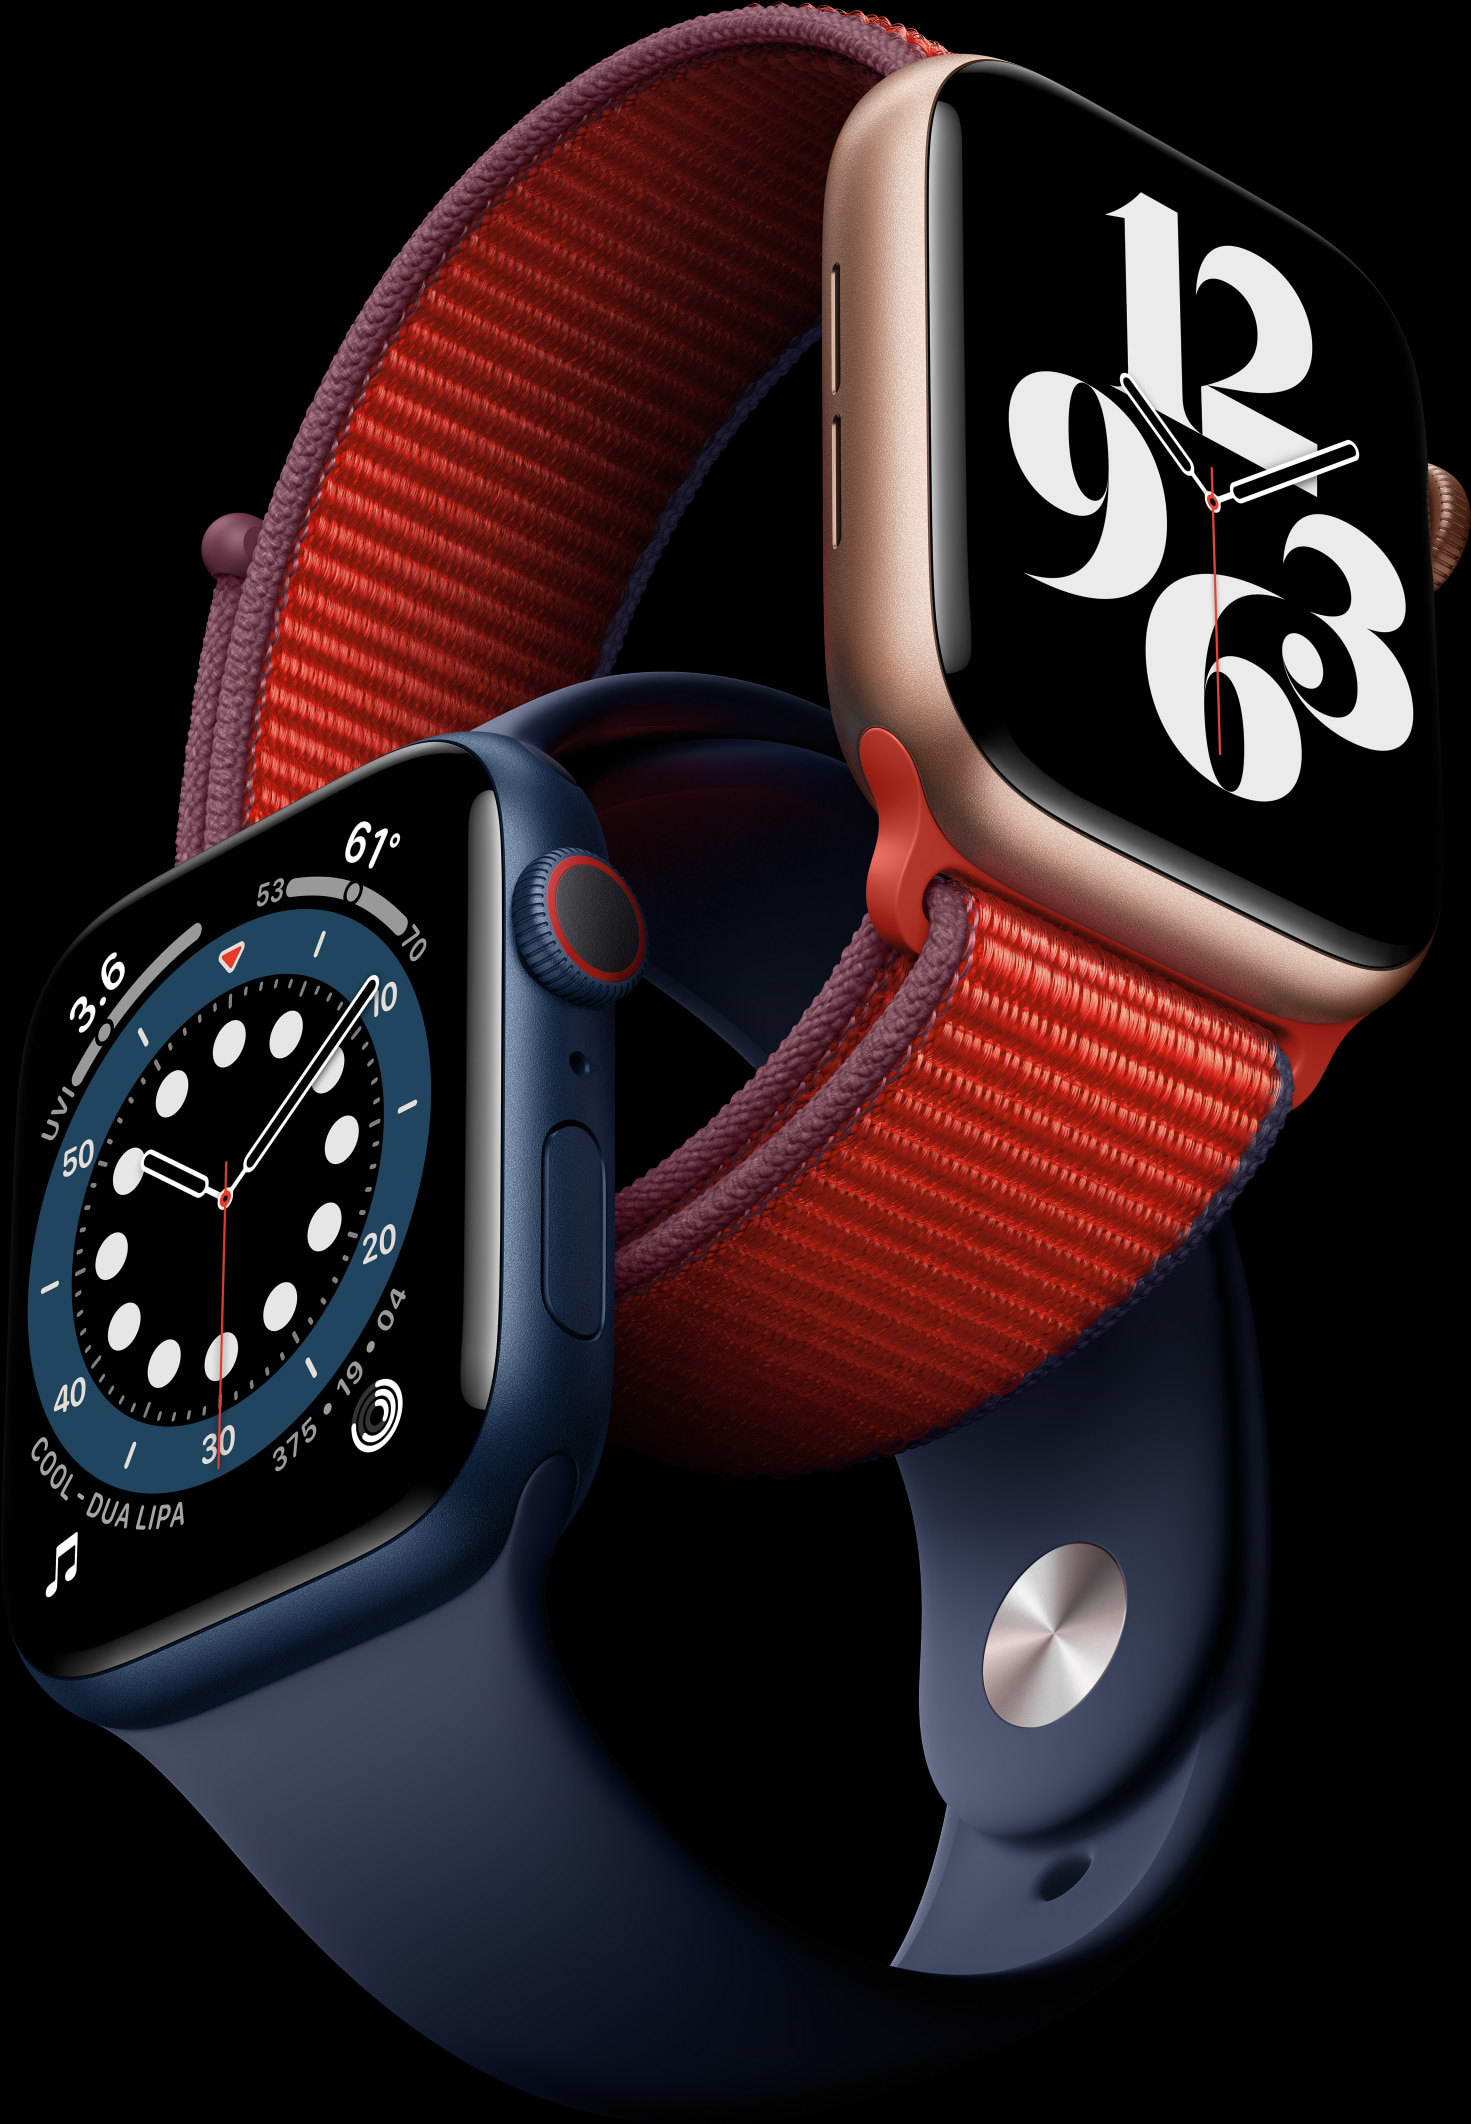 Apple Watch Series 6 Photo